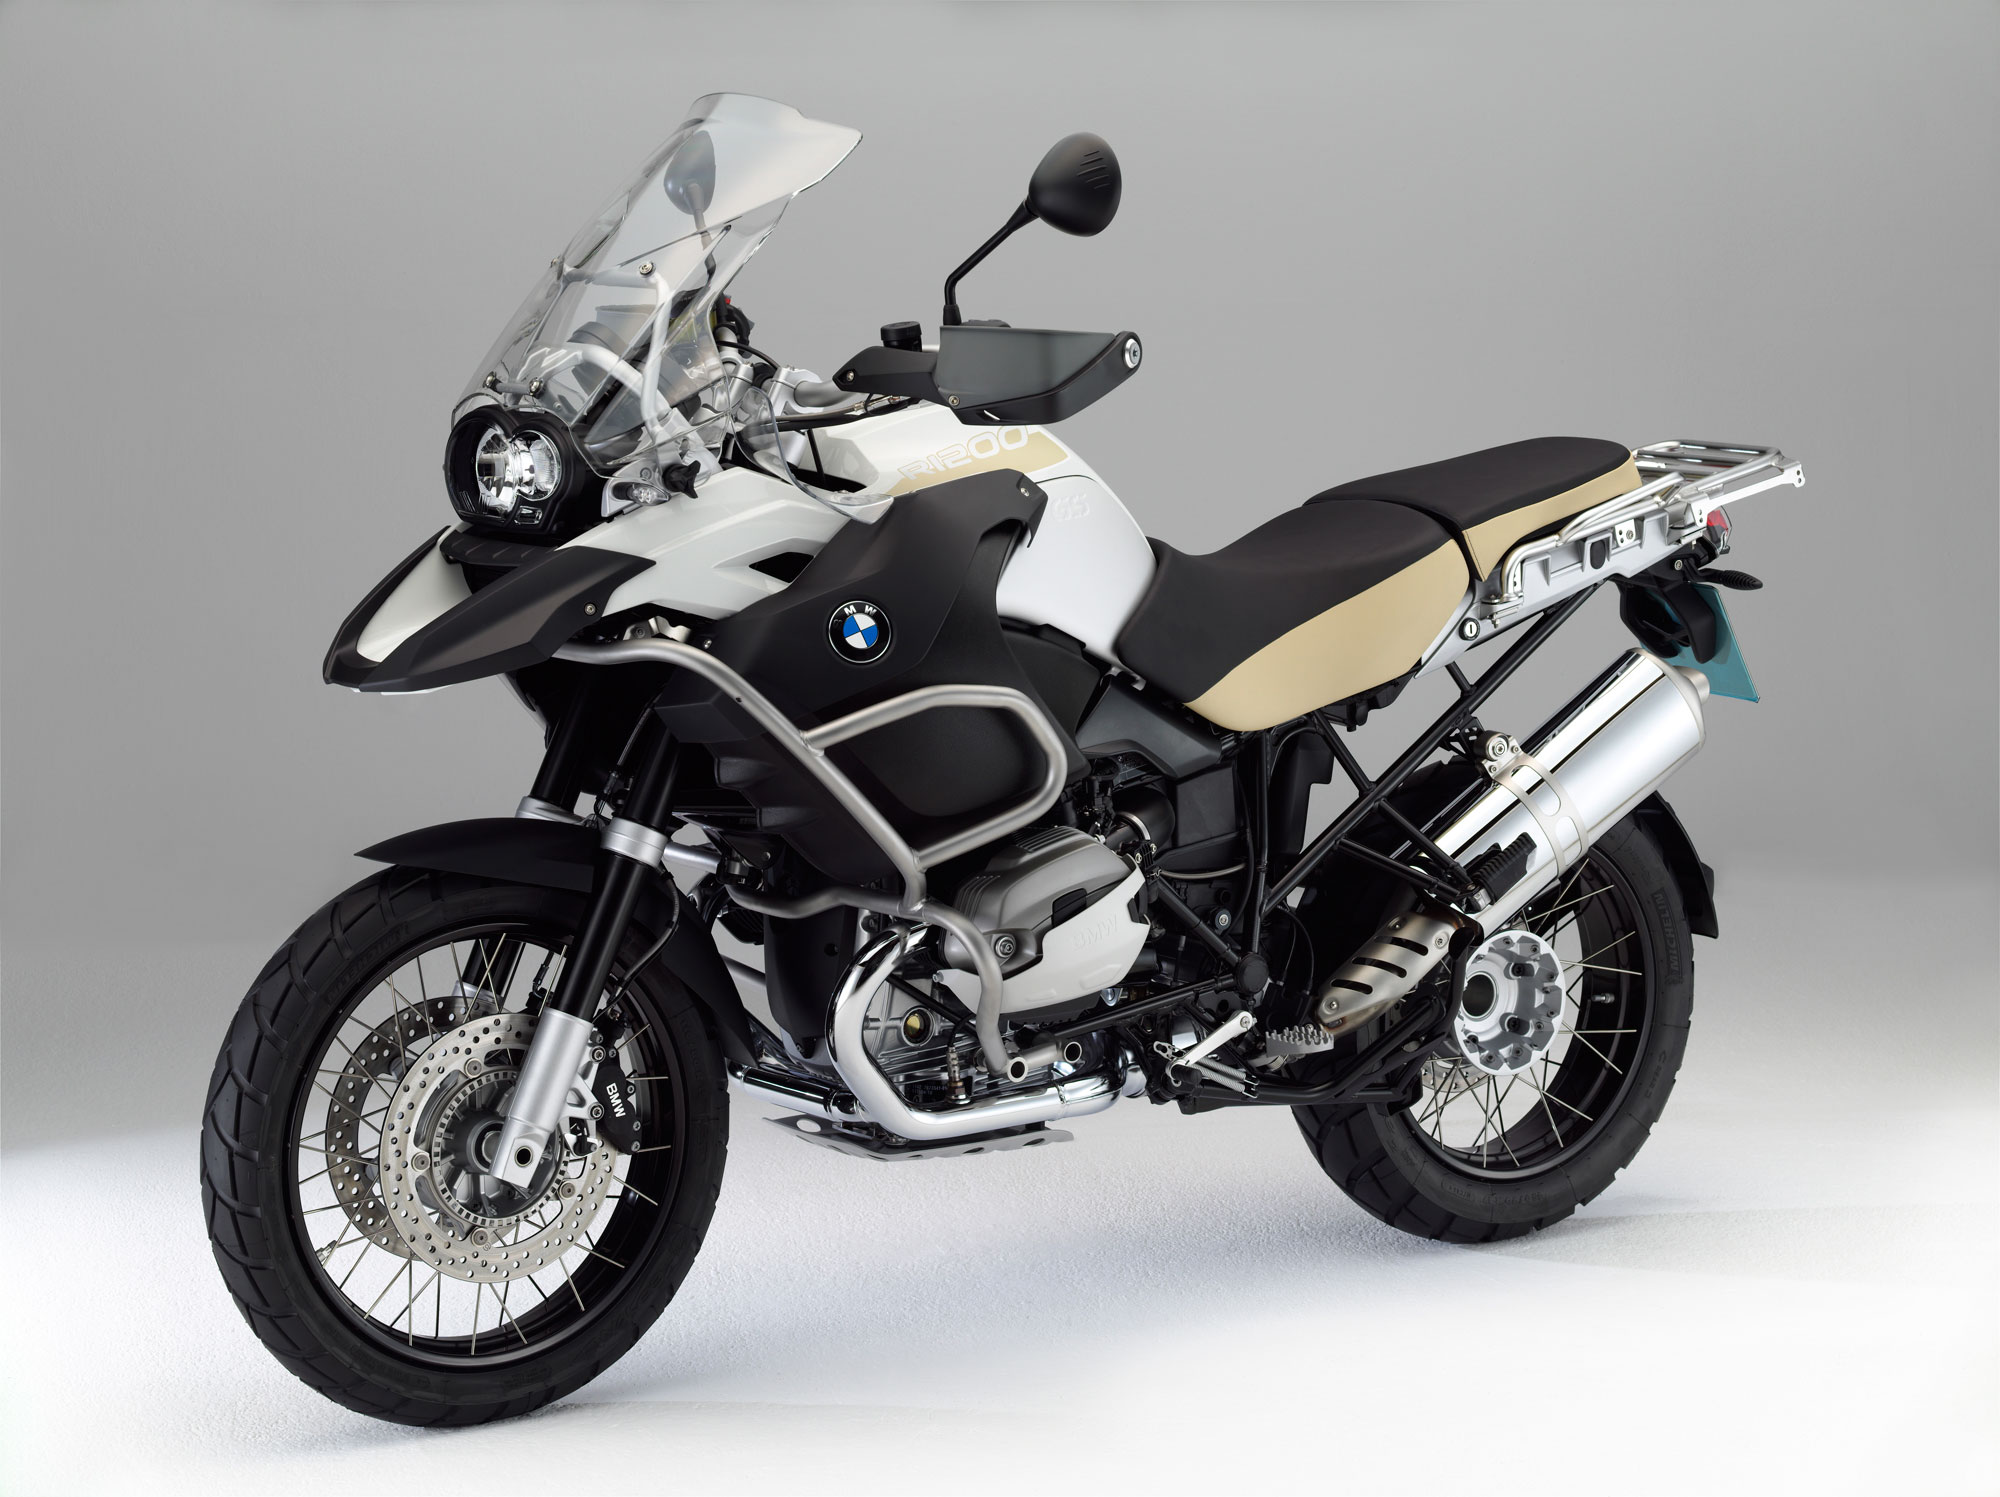 bmw r 1200 gs adventure specs 2011 2012 autoevolution. Black Bedroom Furniture Sets. Home Design Ideas